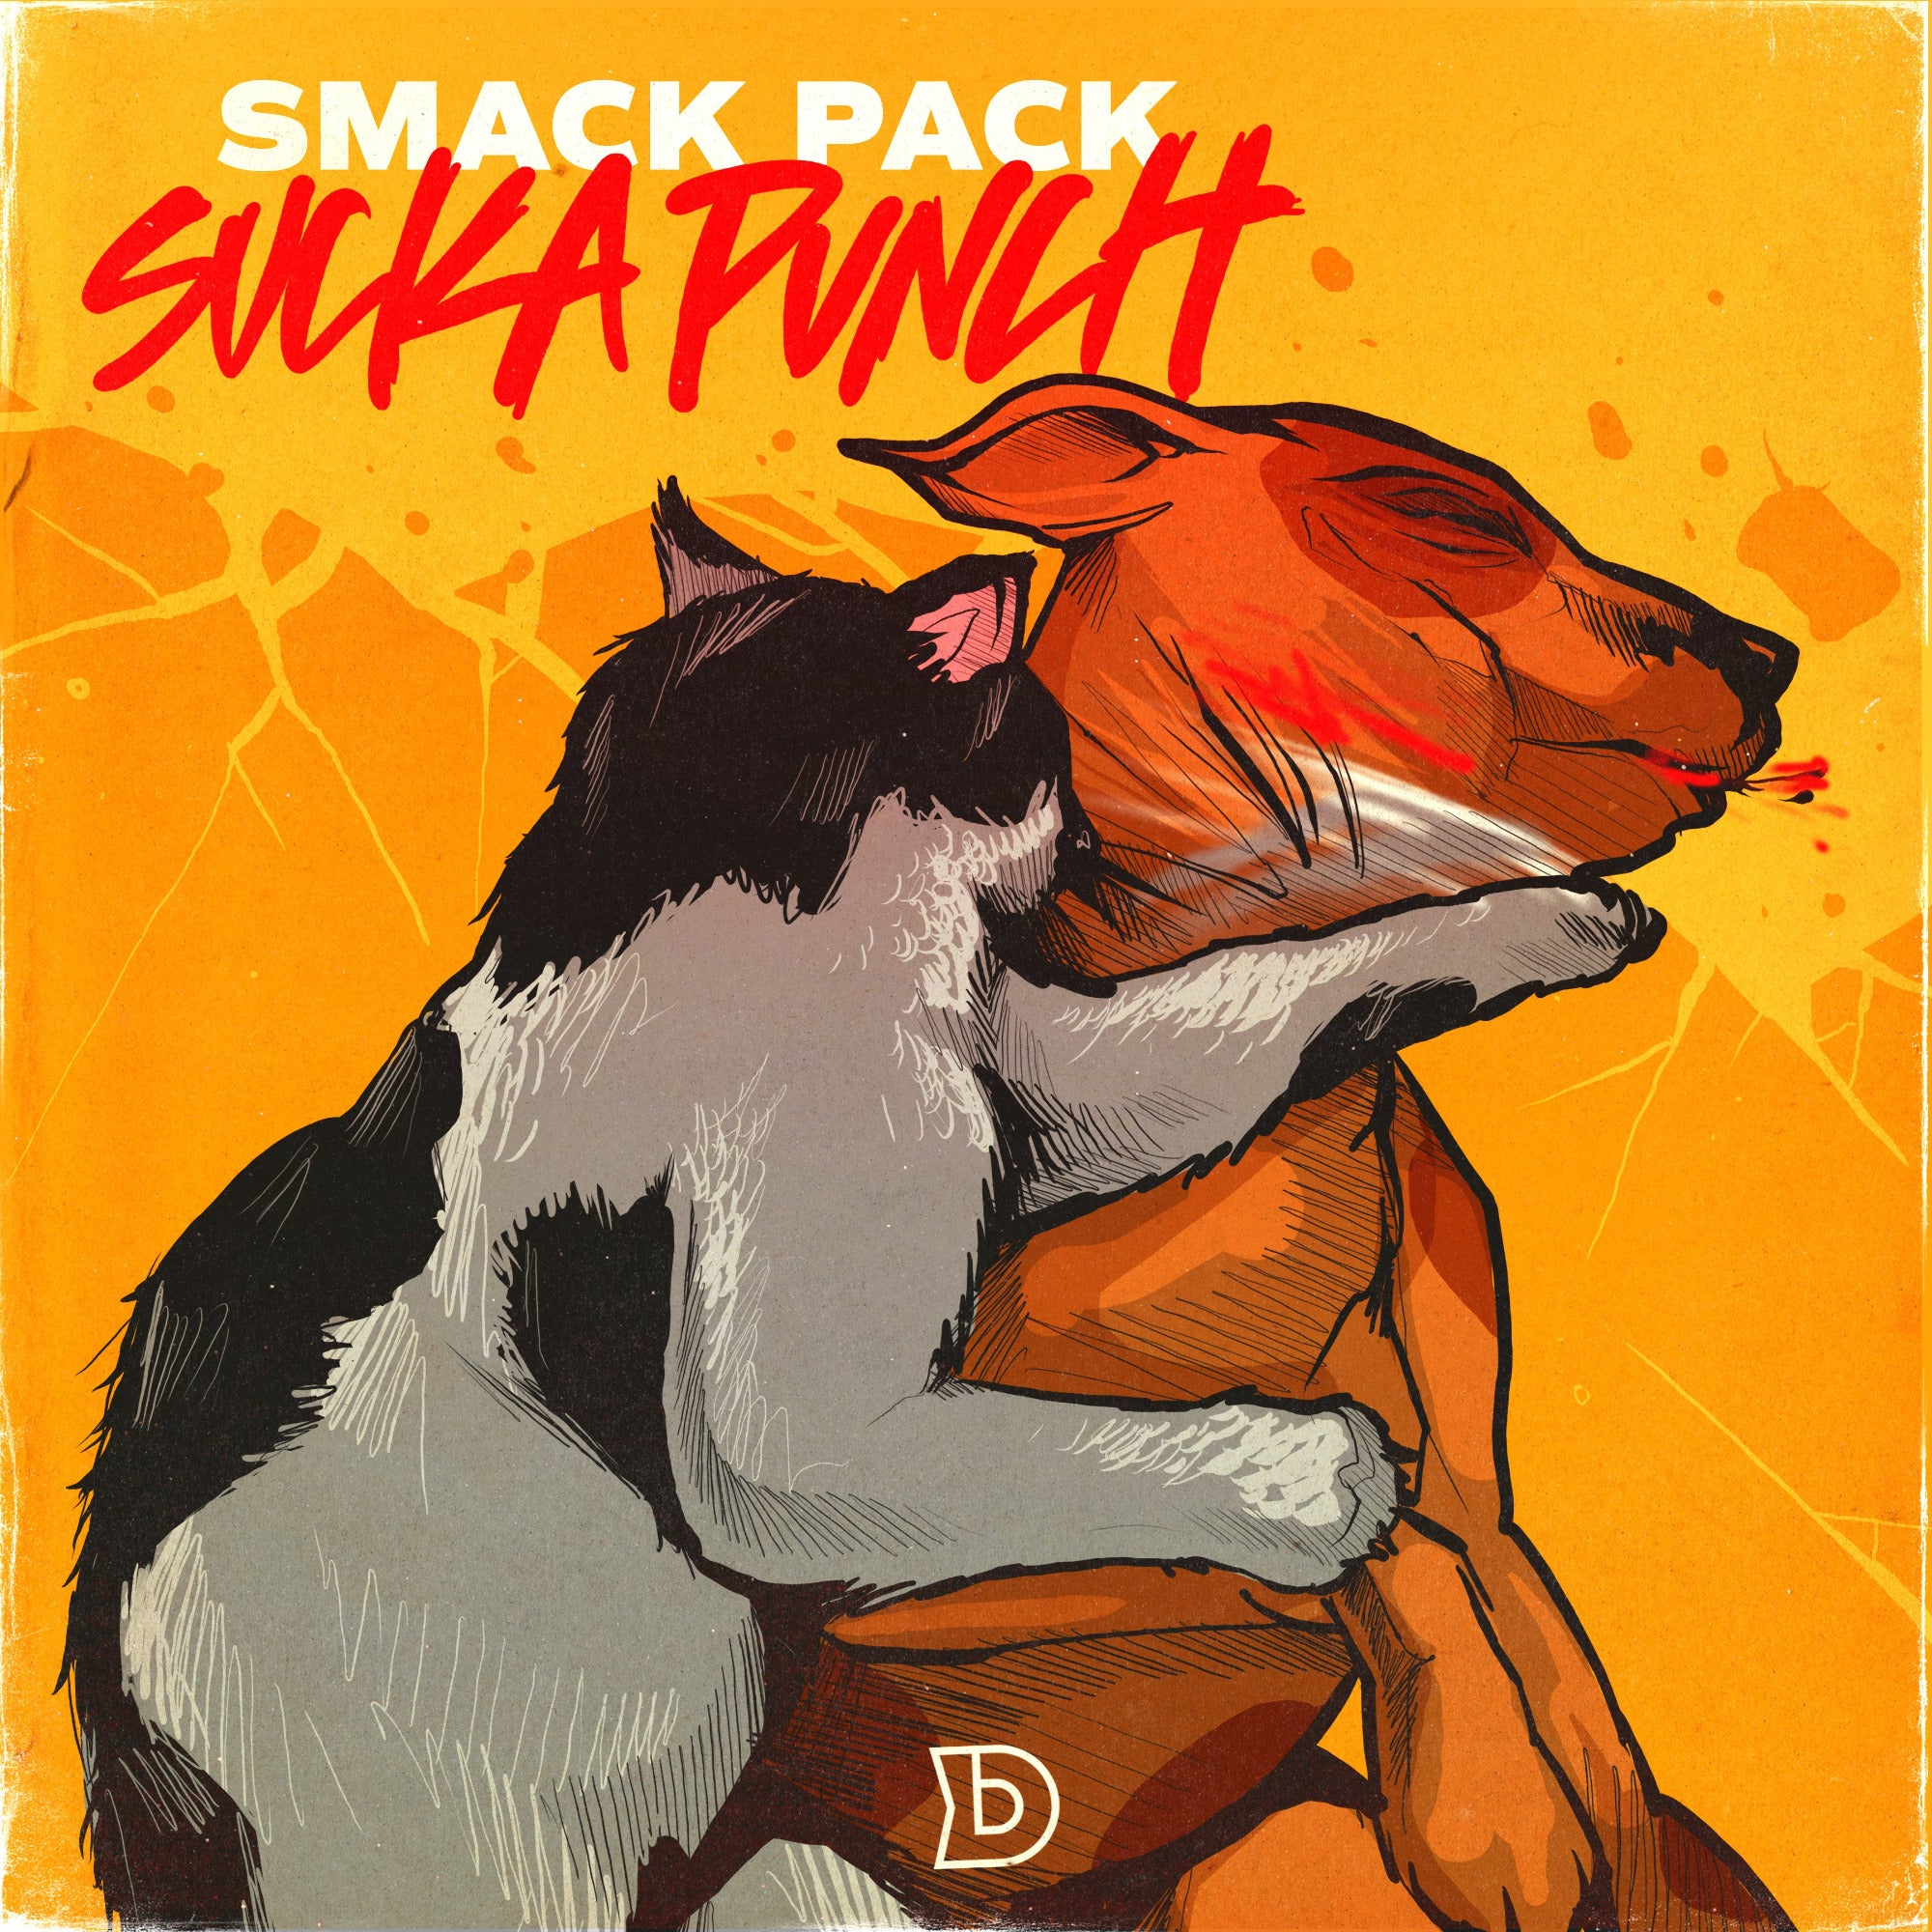 Smack Pack: Sucka Punch